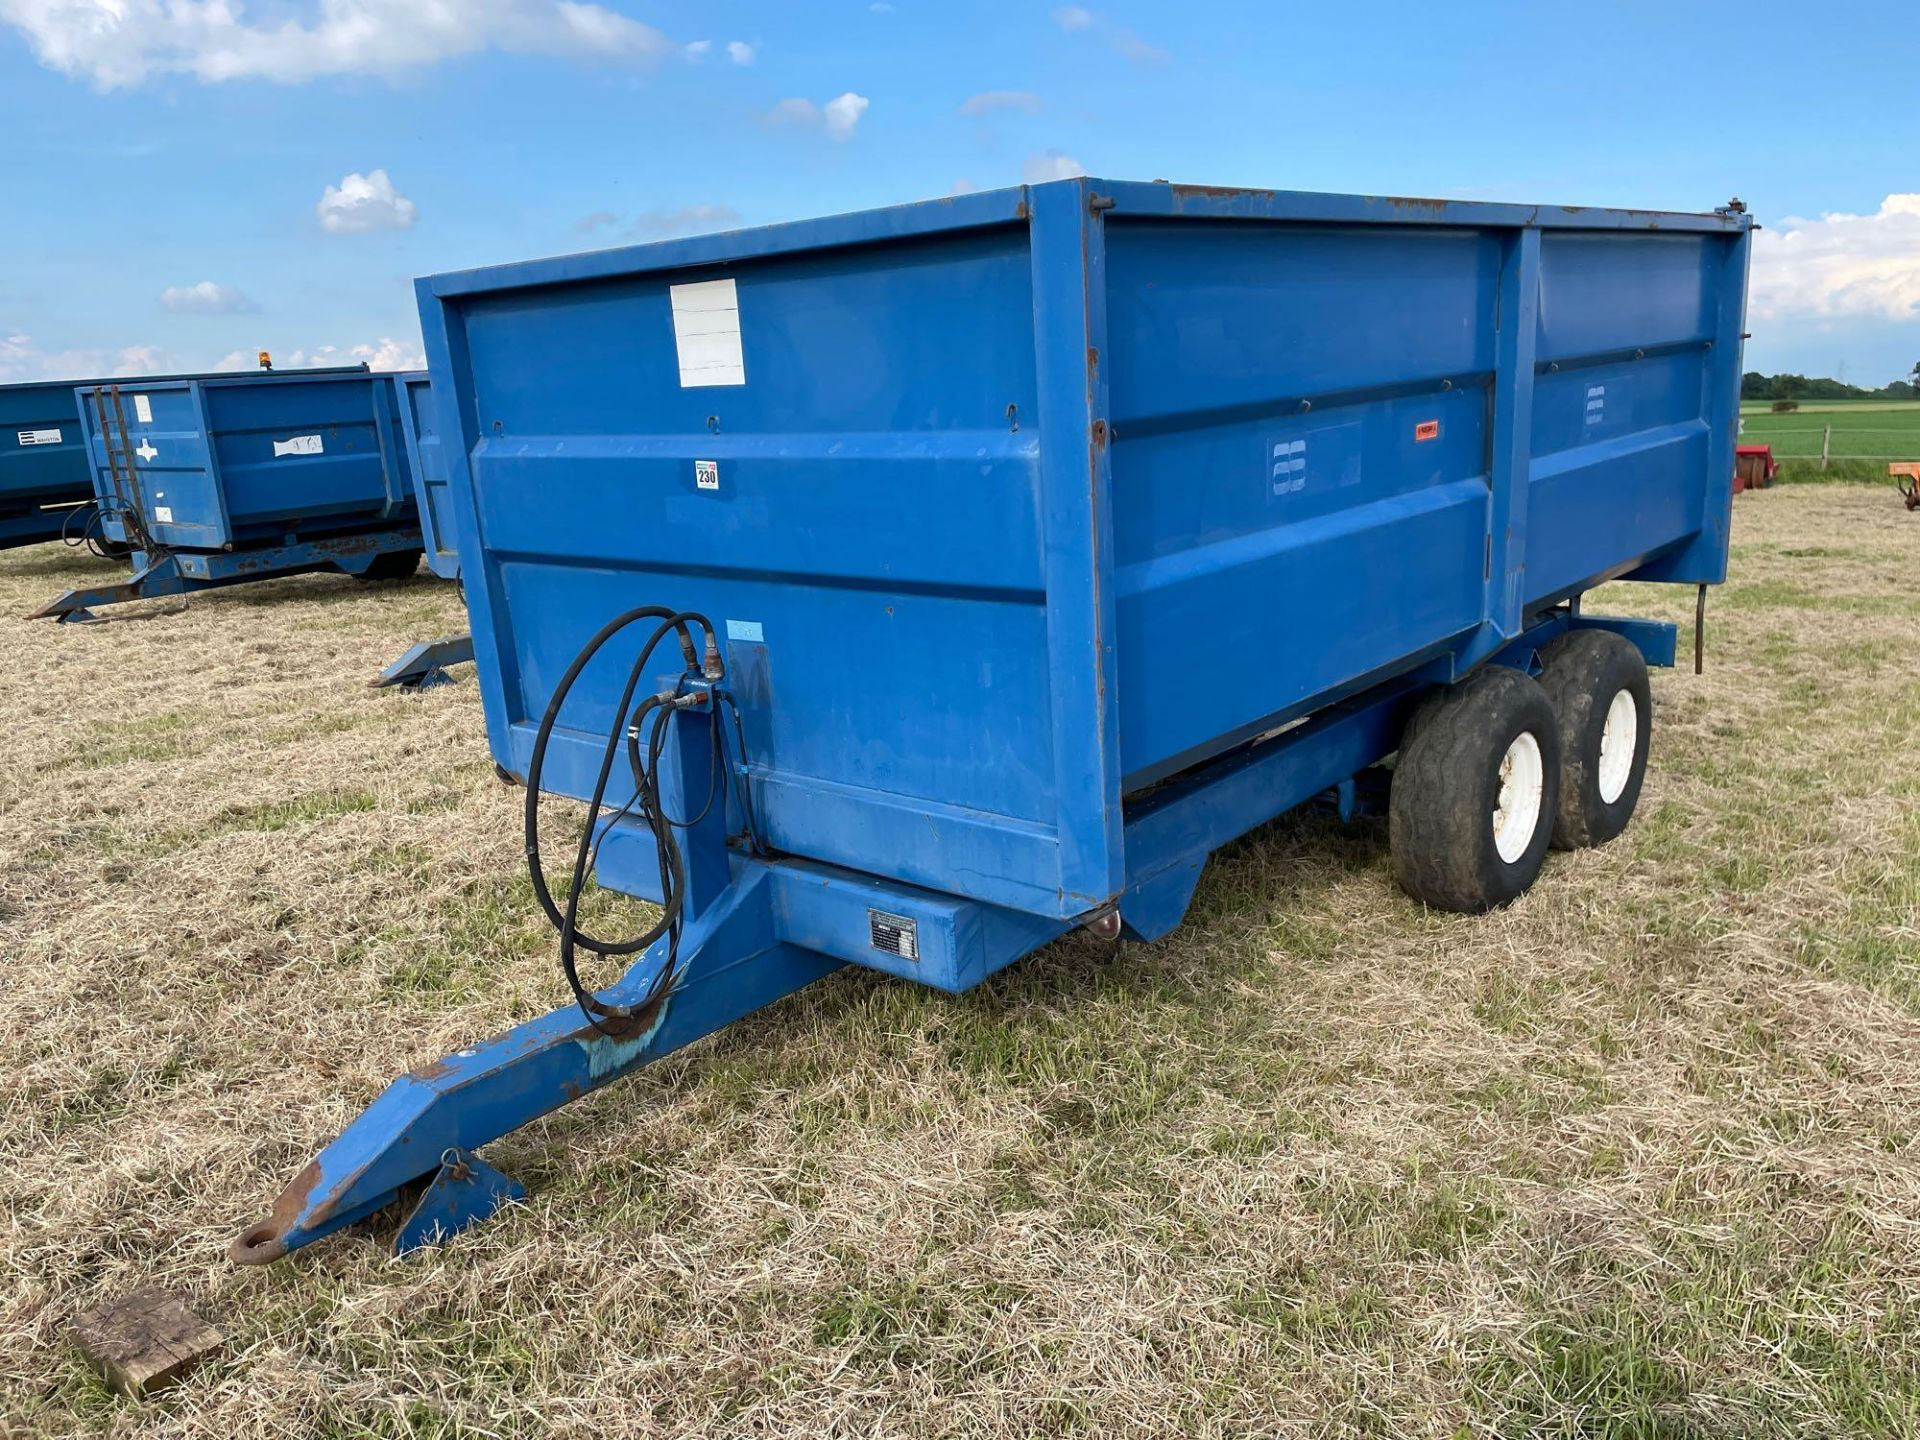 1986 AS Marston 8t twin axle grain trailer, manual tailgate and grain chute on 11.5/80-15.3 wheels a - Image 2 of 15